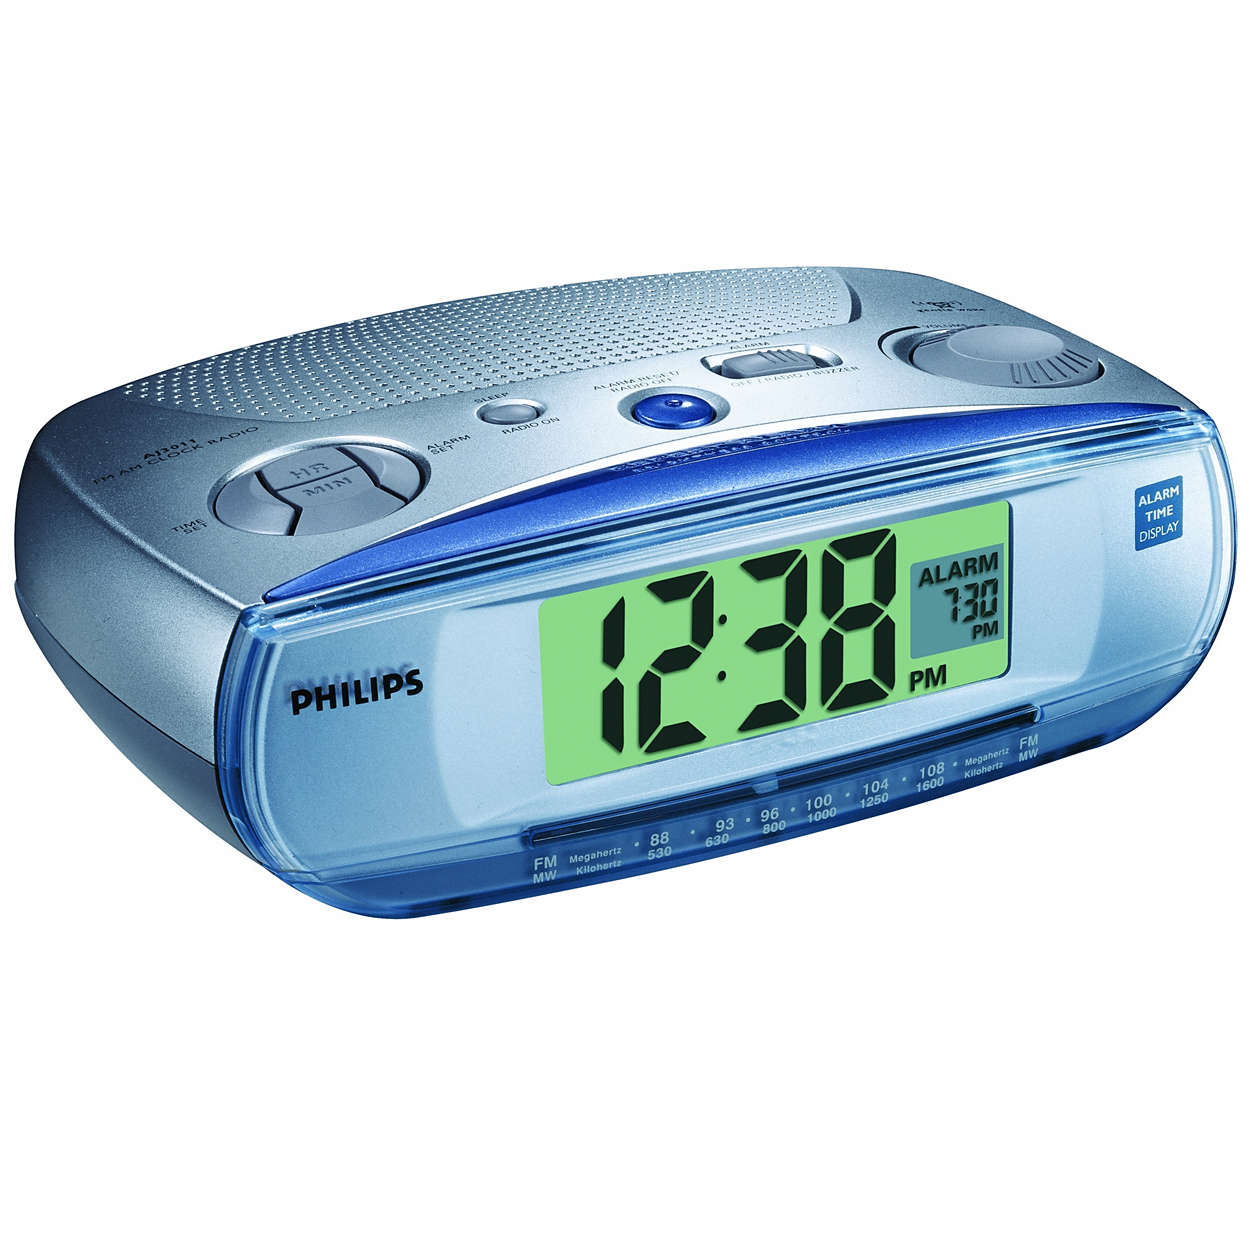 Alarm Time Display